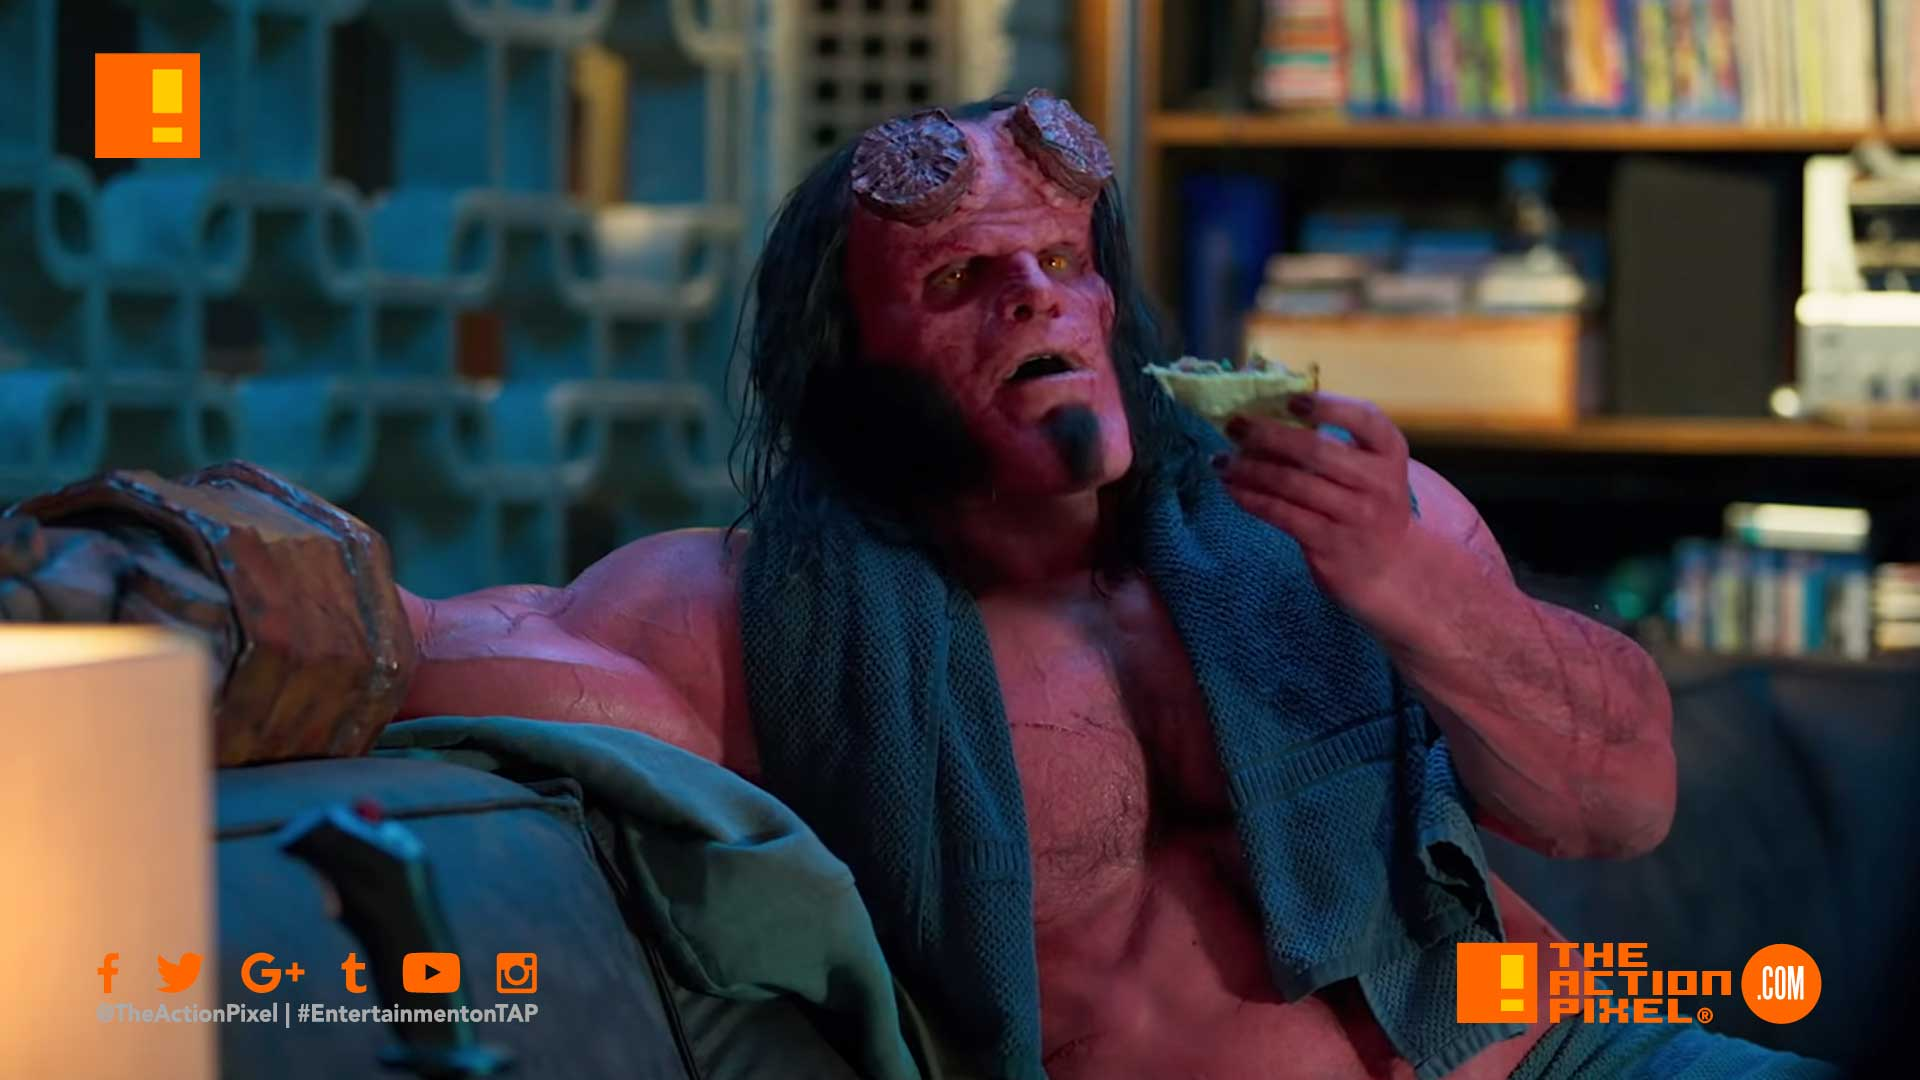 hellboy, osiris club, mike mignola, dark horse comics, hellboy, hellboy red band trailer, the action pixel, entertainment on tap, trailer, lionsgate movies,